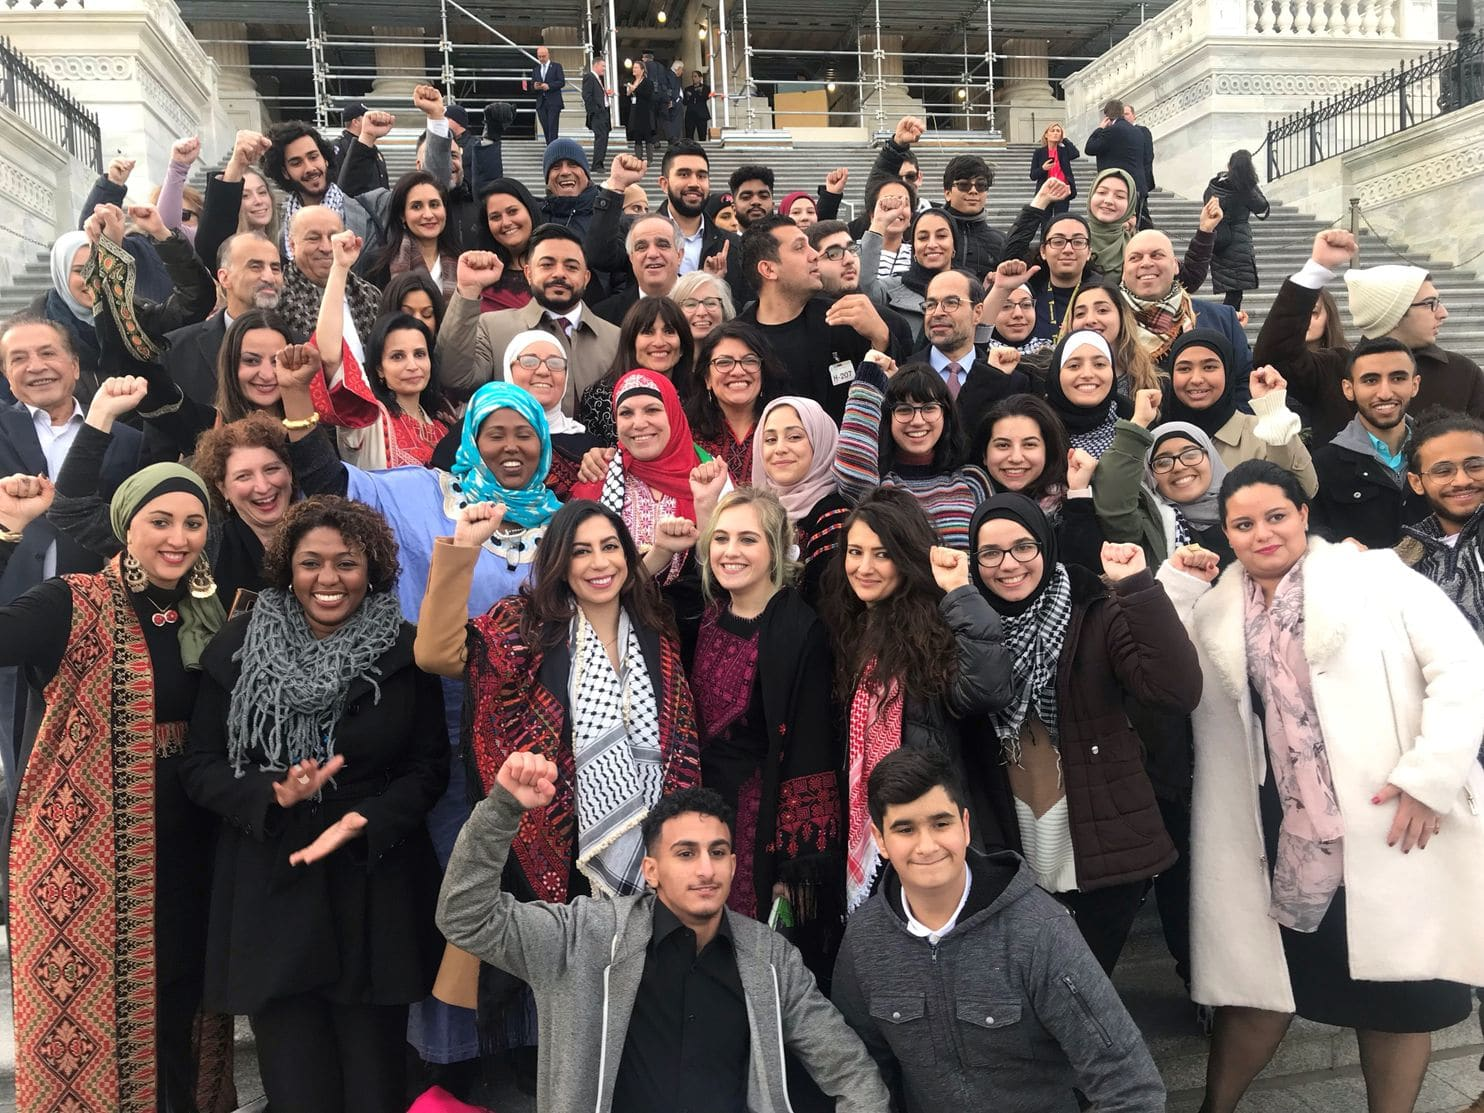 The nation's first two Muslim congresswomen are sworn in, surrounded by the women they inspired